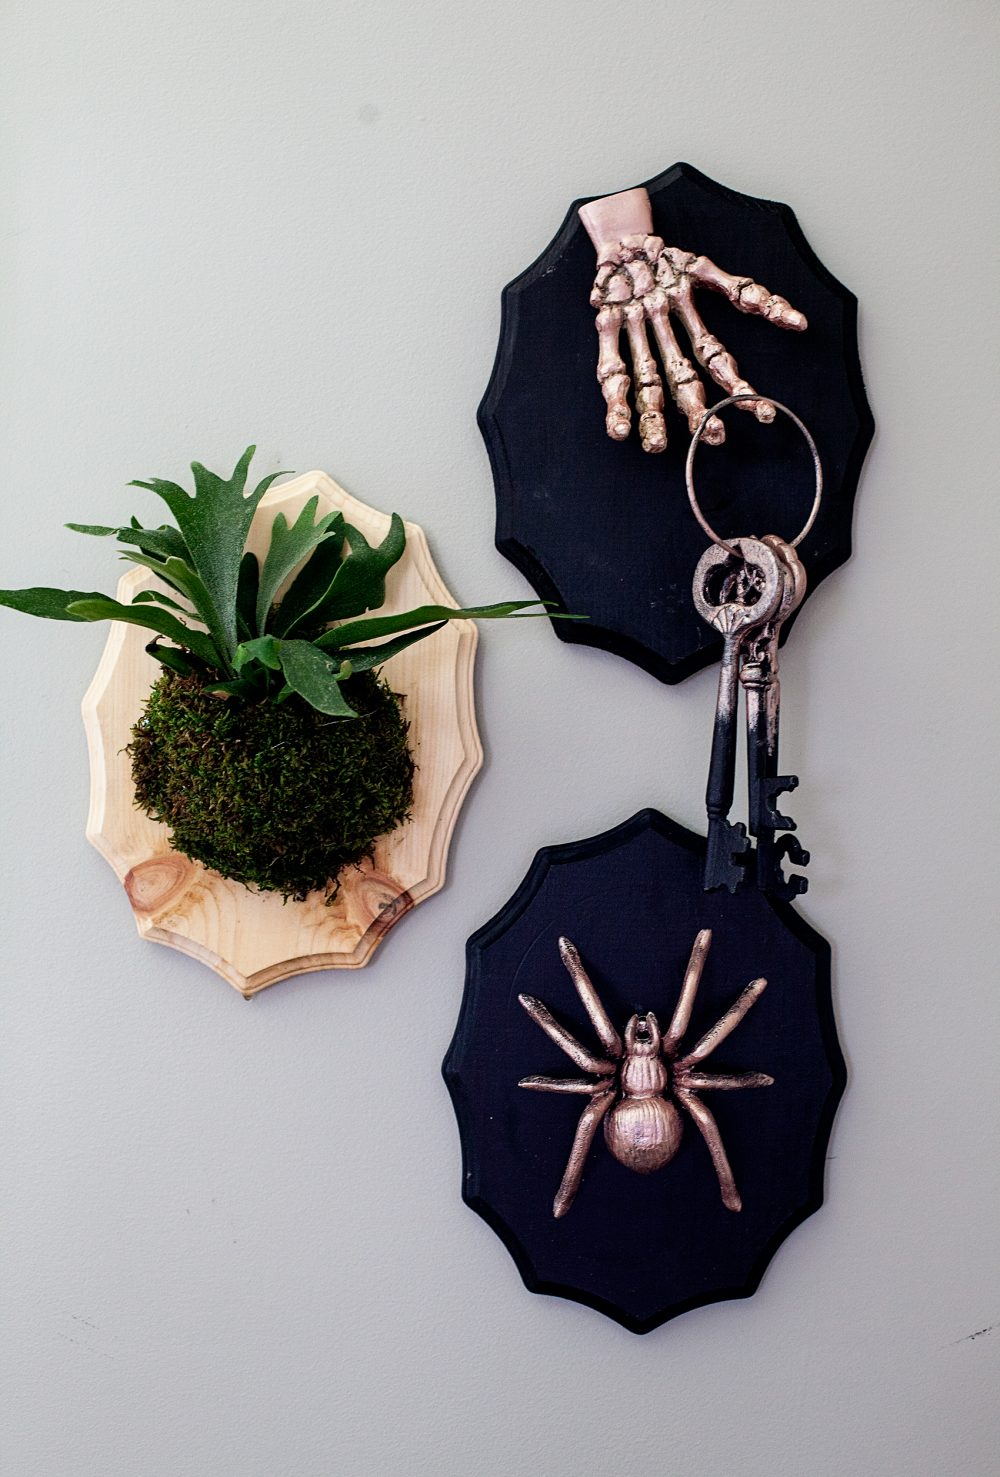 Add a little flair to your spooky Halloween decor with DecoArt! I used their Metallic Lustre to turn simple spooky objects into creepy yet classy taxidermy plaques to decorate our entryway for Halloween.